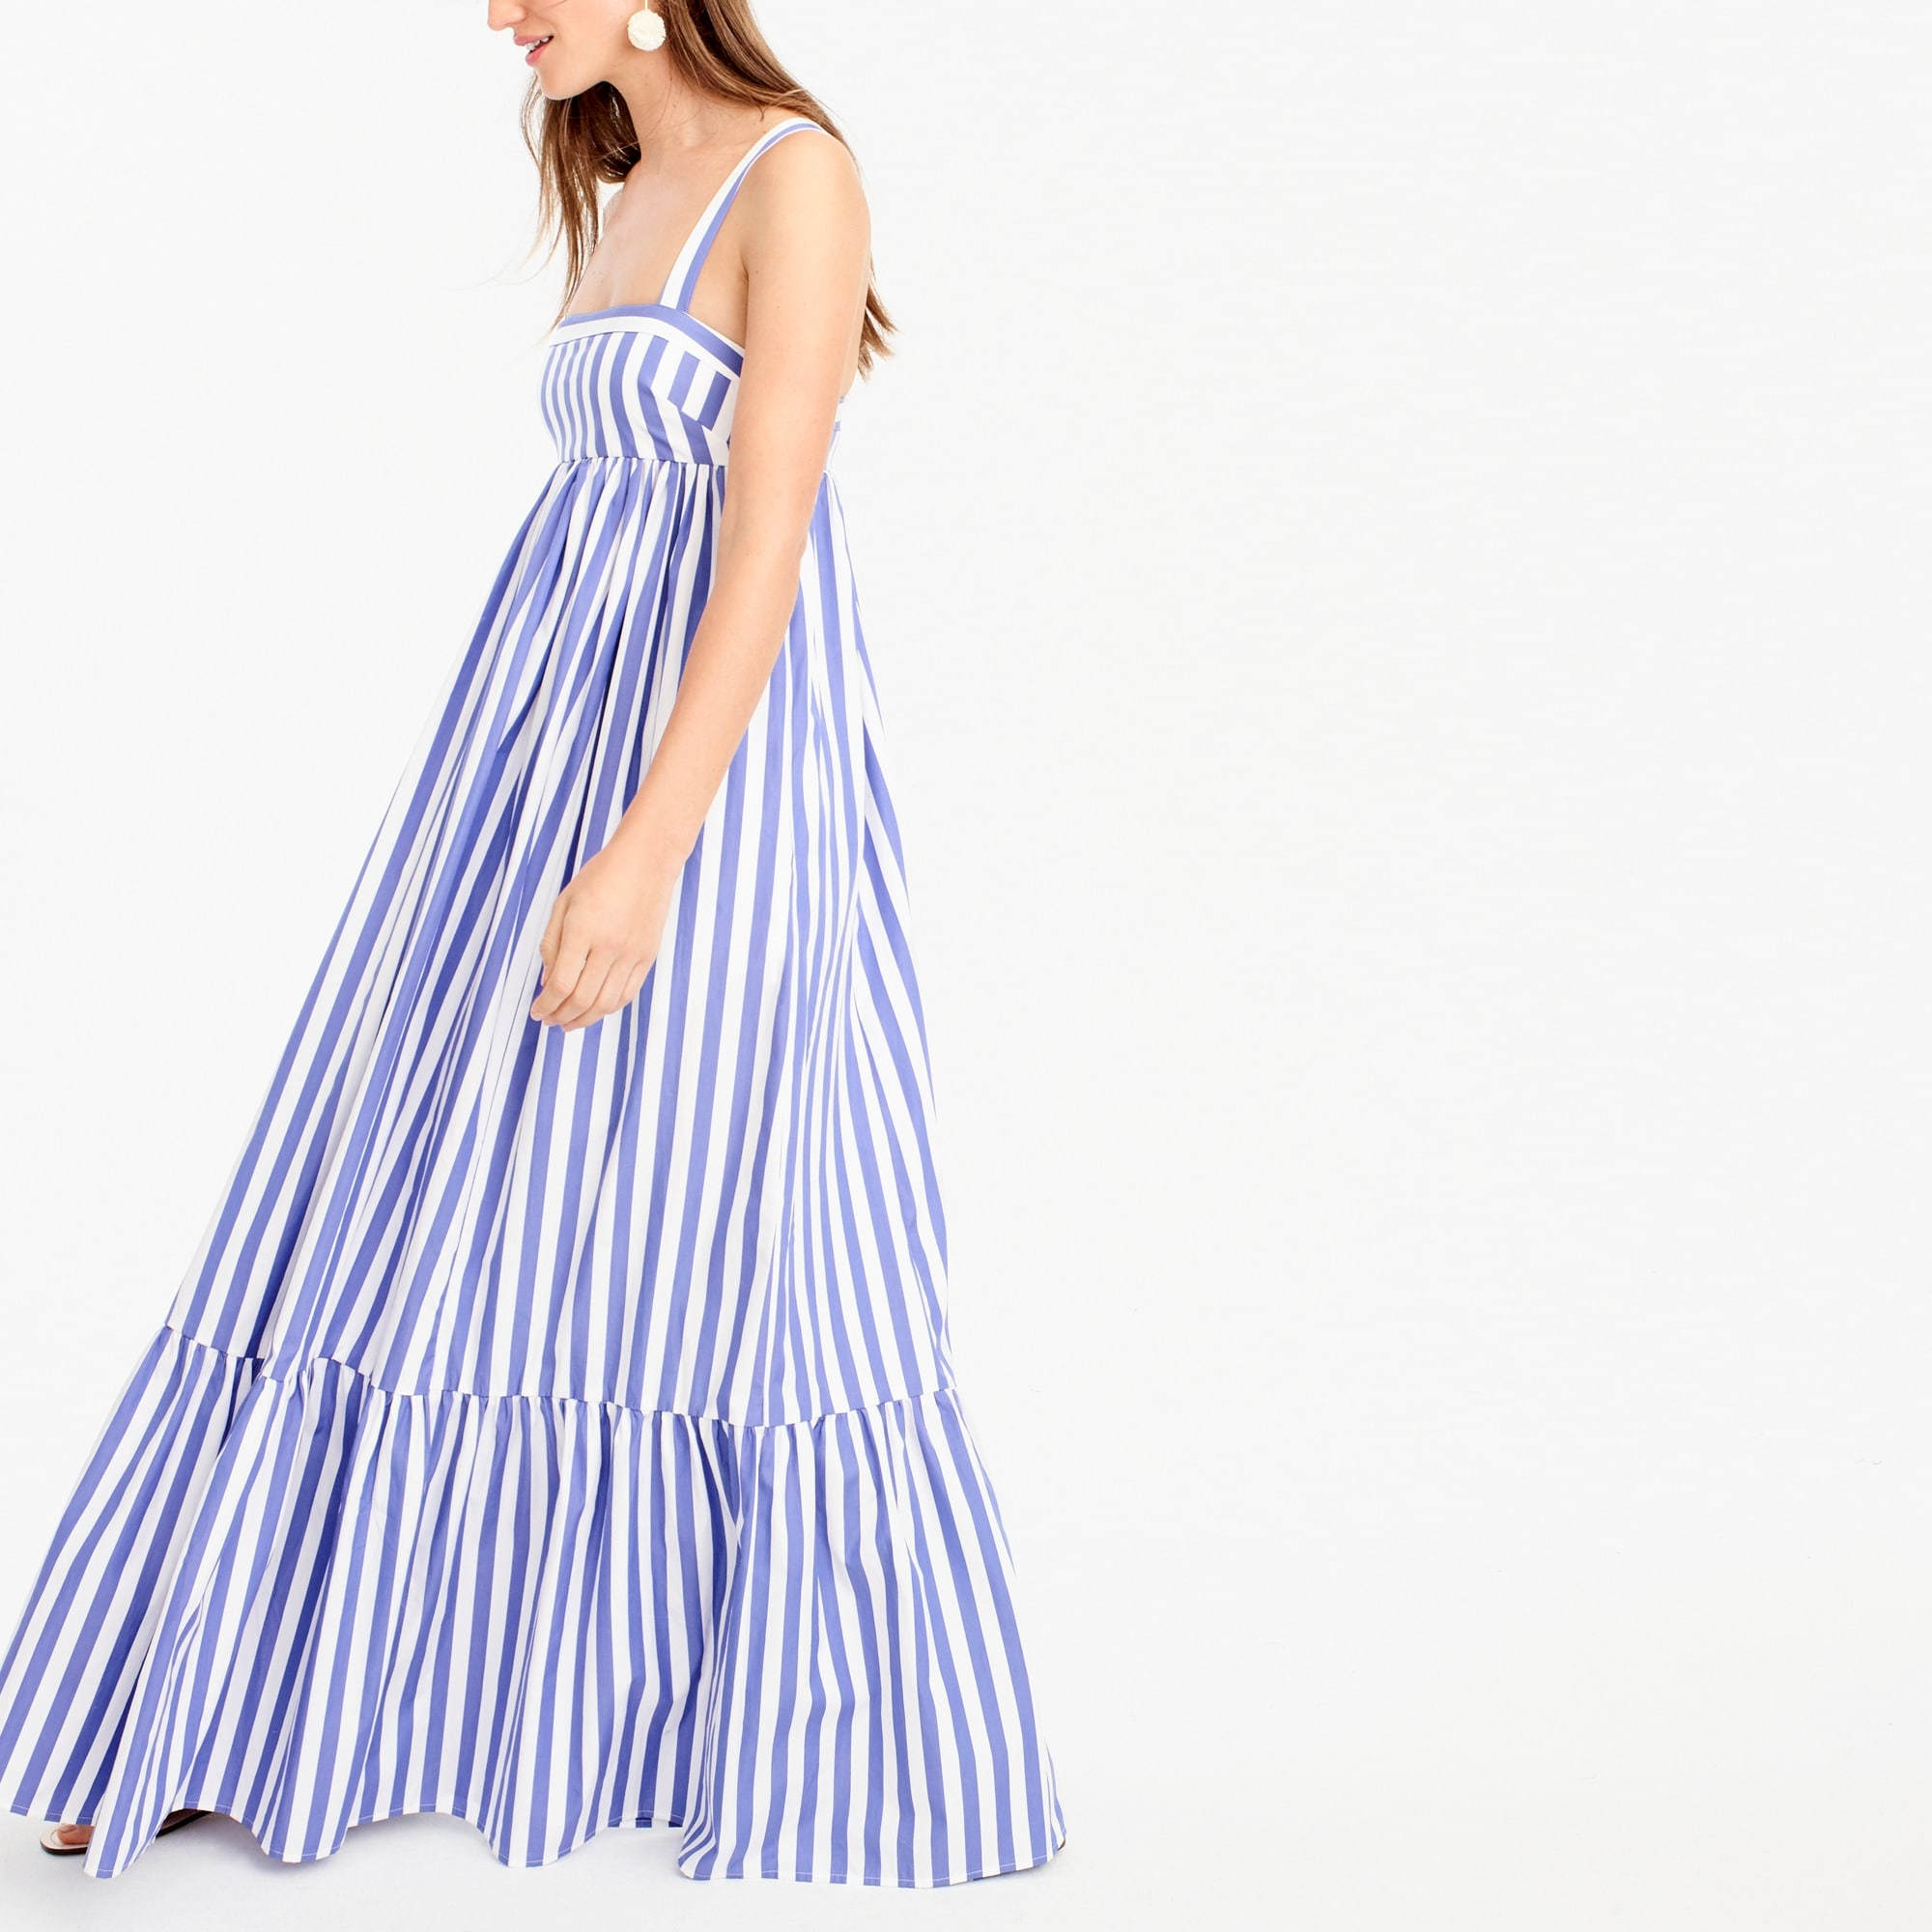 Image 2 for Collection Thomas Mason® for J.Crew tiered ruffle dress